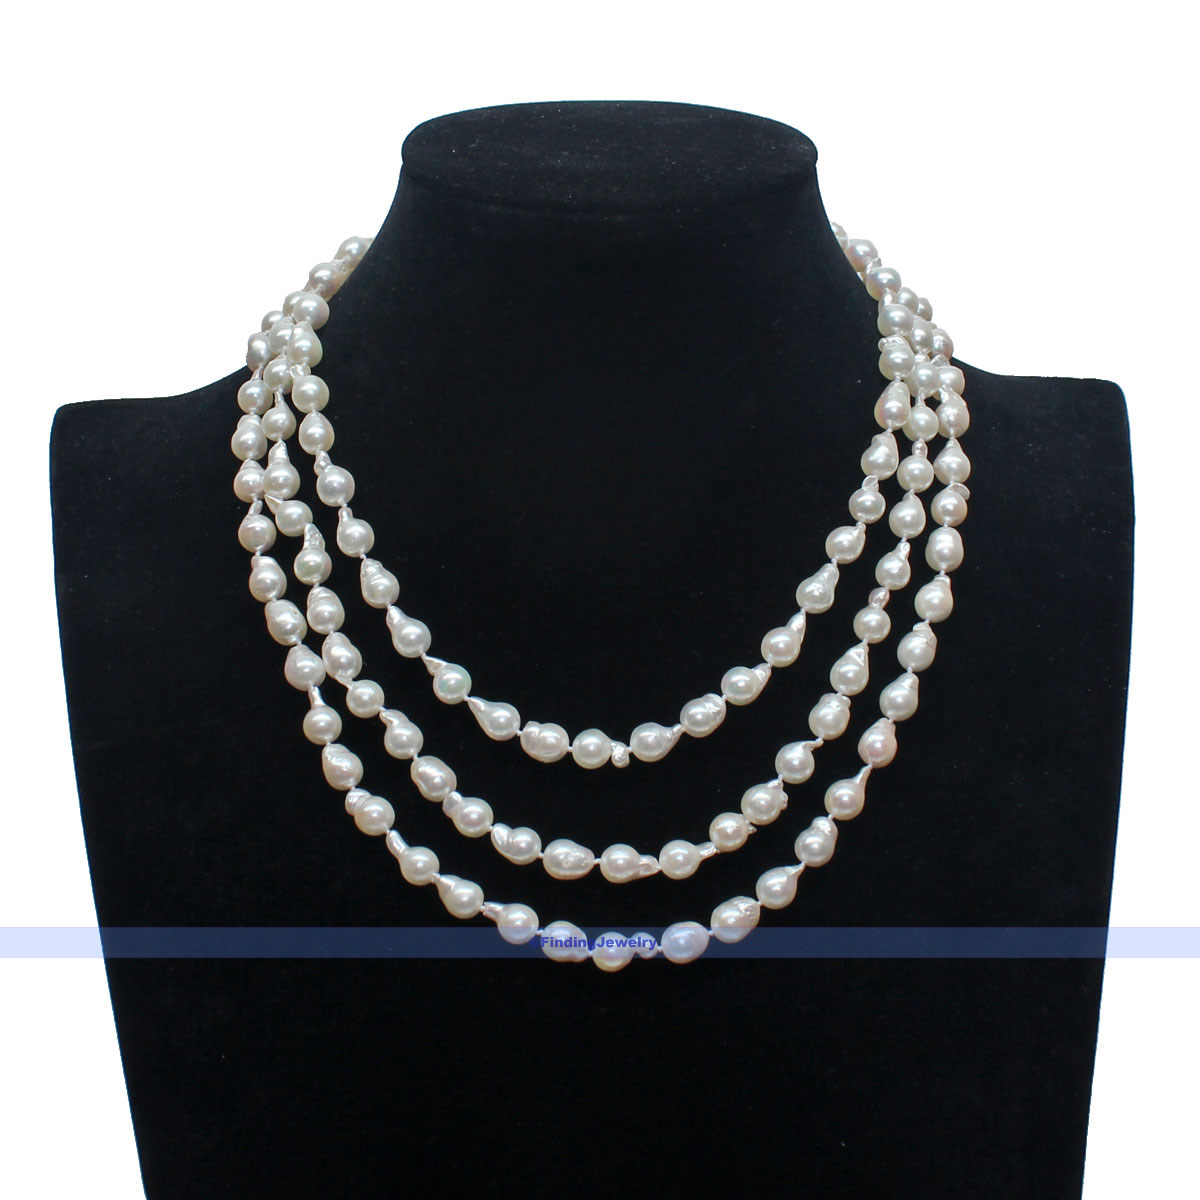 Natural Saltwater Pearl Necklace: New 3 Strands Natural White Saltwater Akoya Keshi Pearl